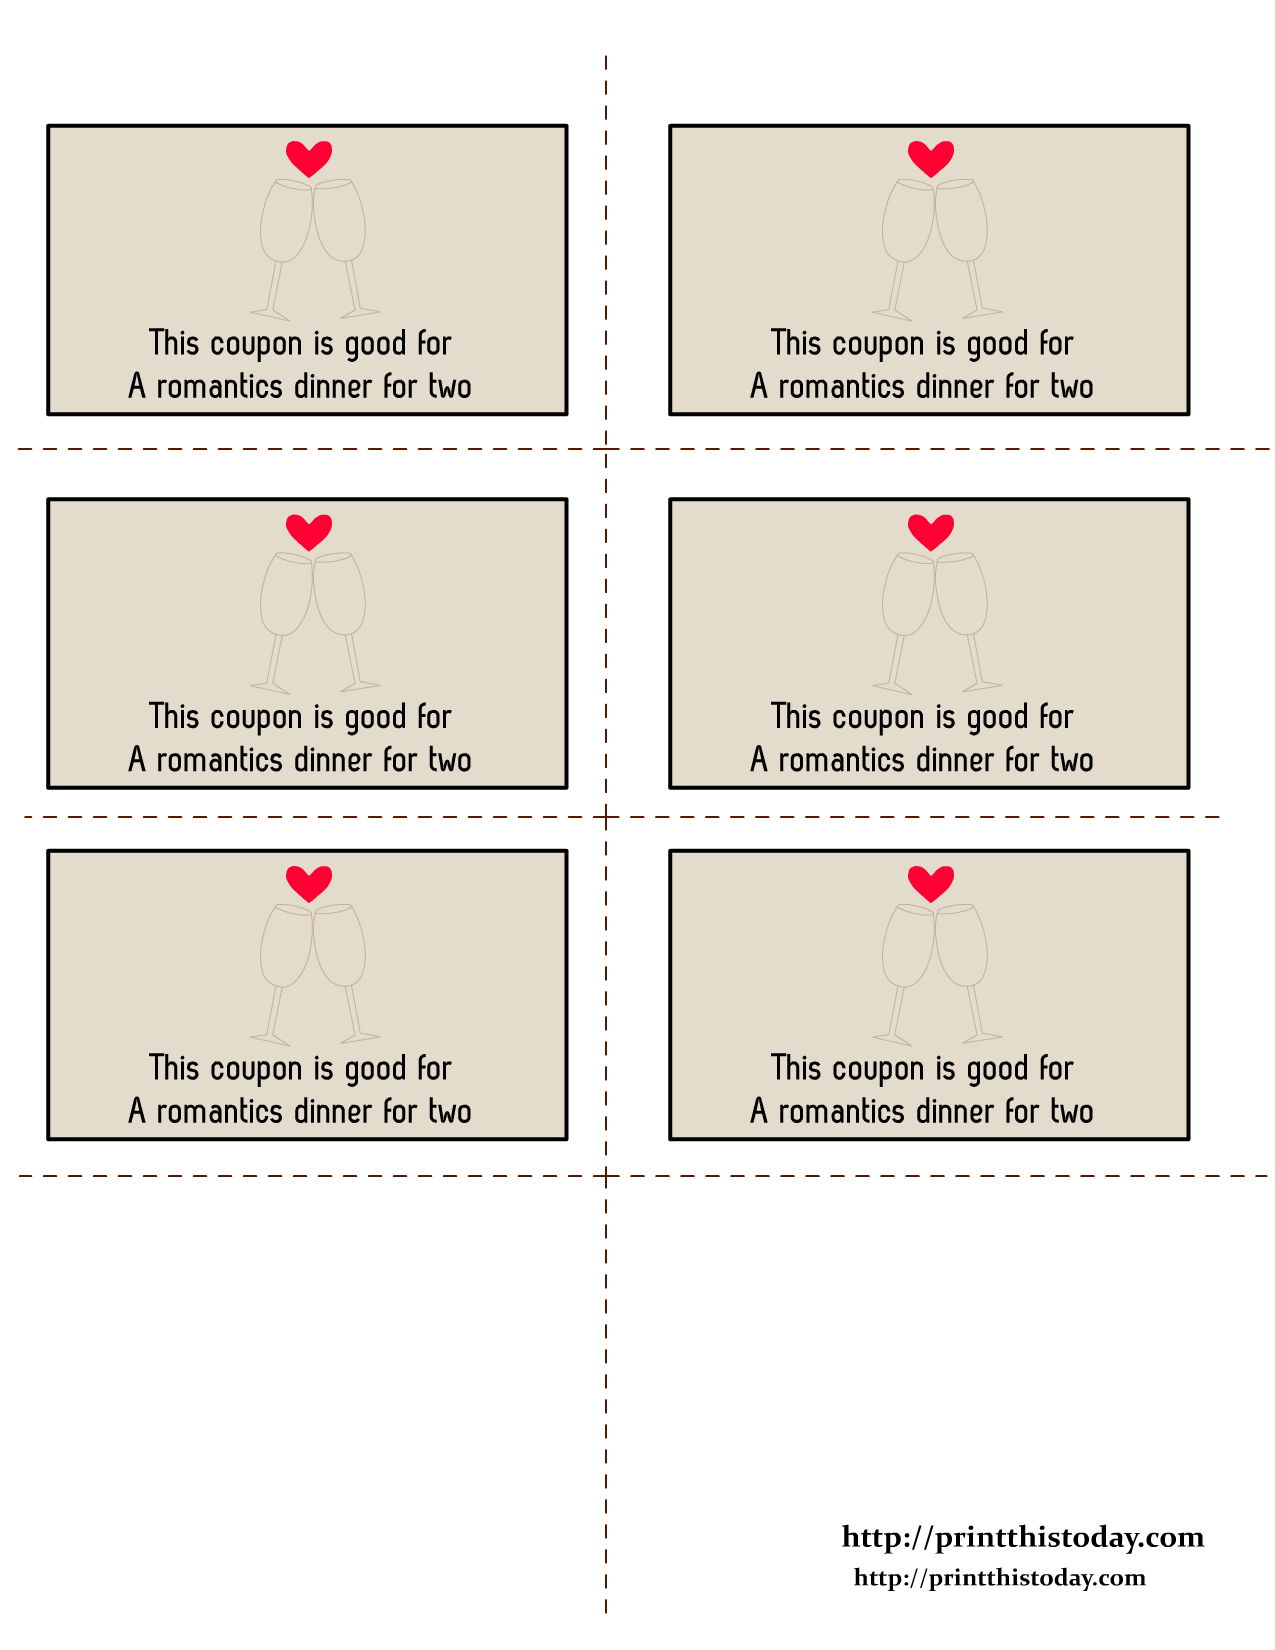 Free Printable Valentine Coupons | Free Printables | Love Coupons - Free Printable Love Coupons For Wife